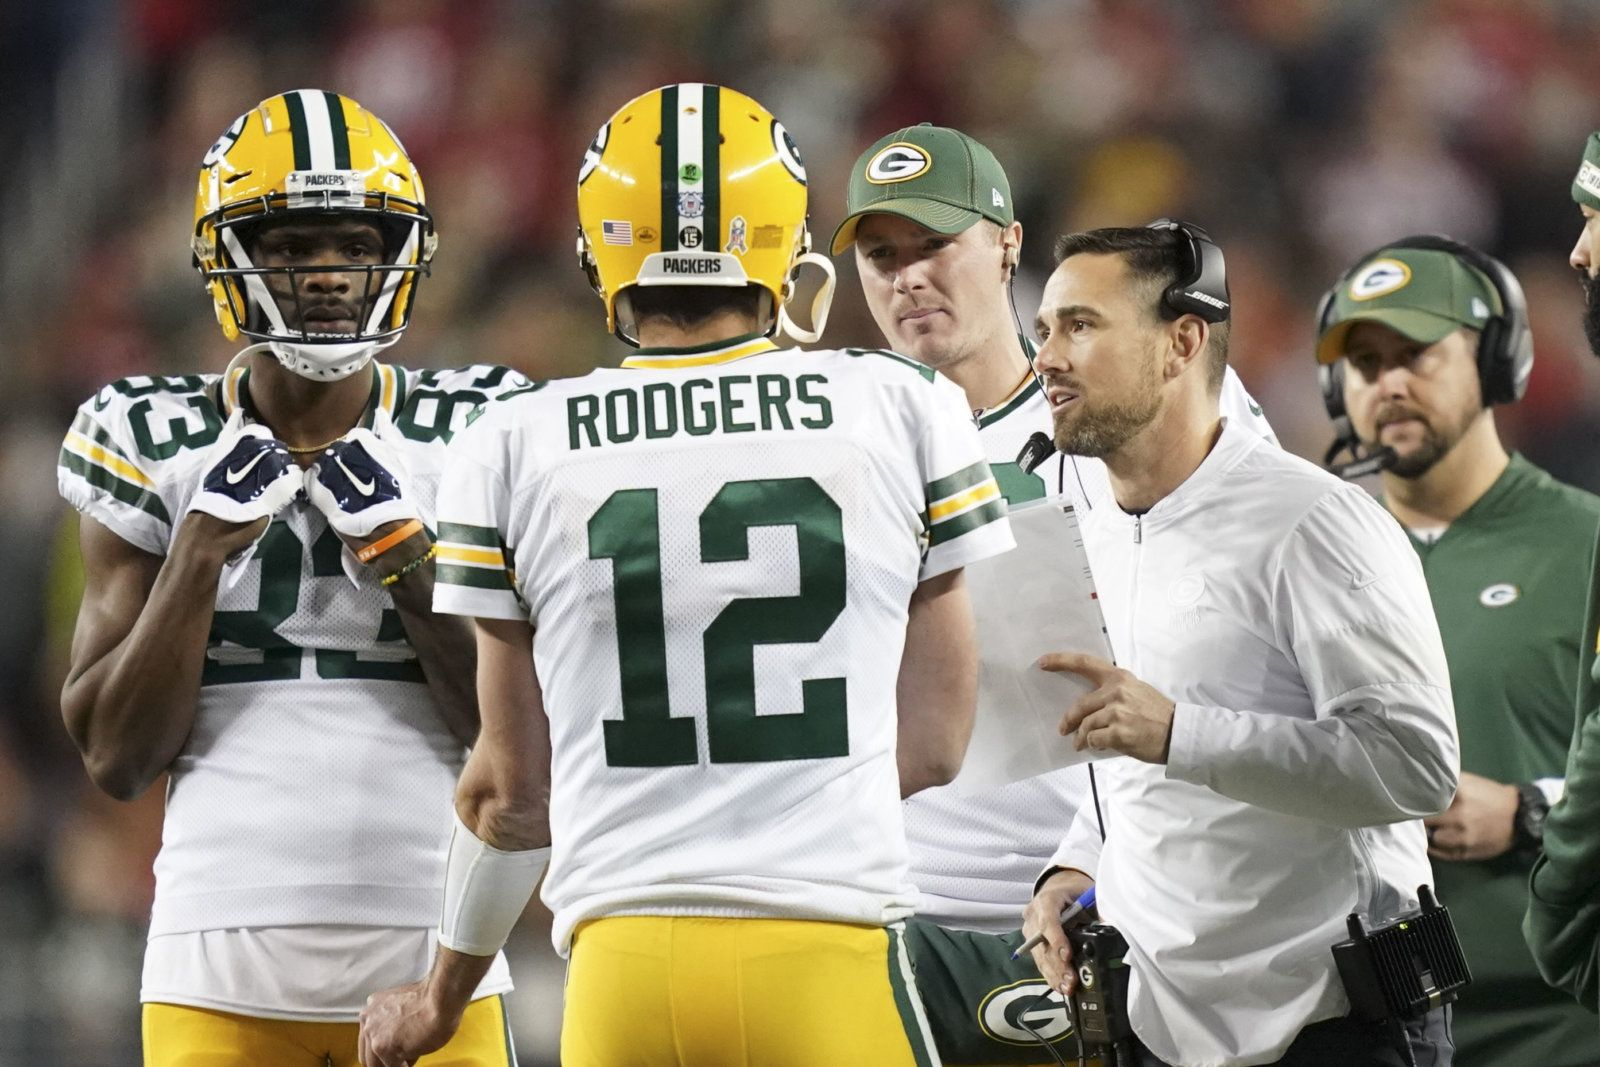 It S A Changing Of The Guard Among Nfl Quarterbacks Total Packers Green Bay Packers Merchandise Nfl Quarterback